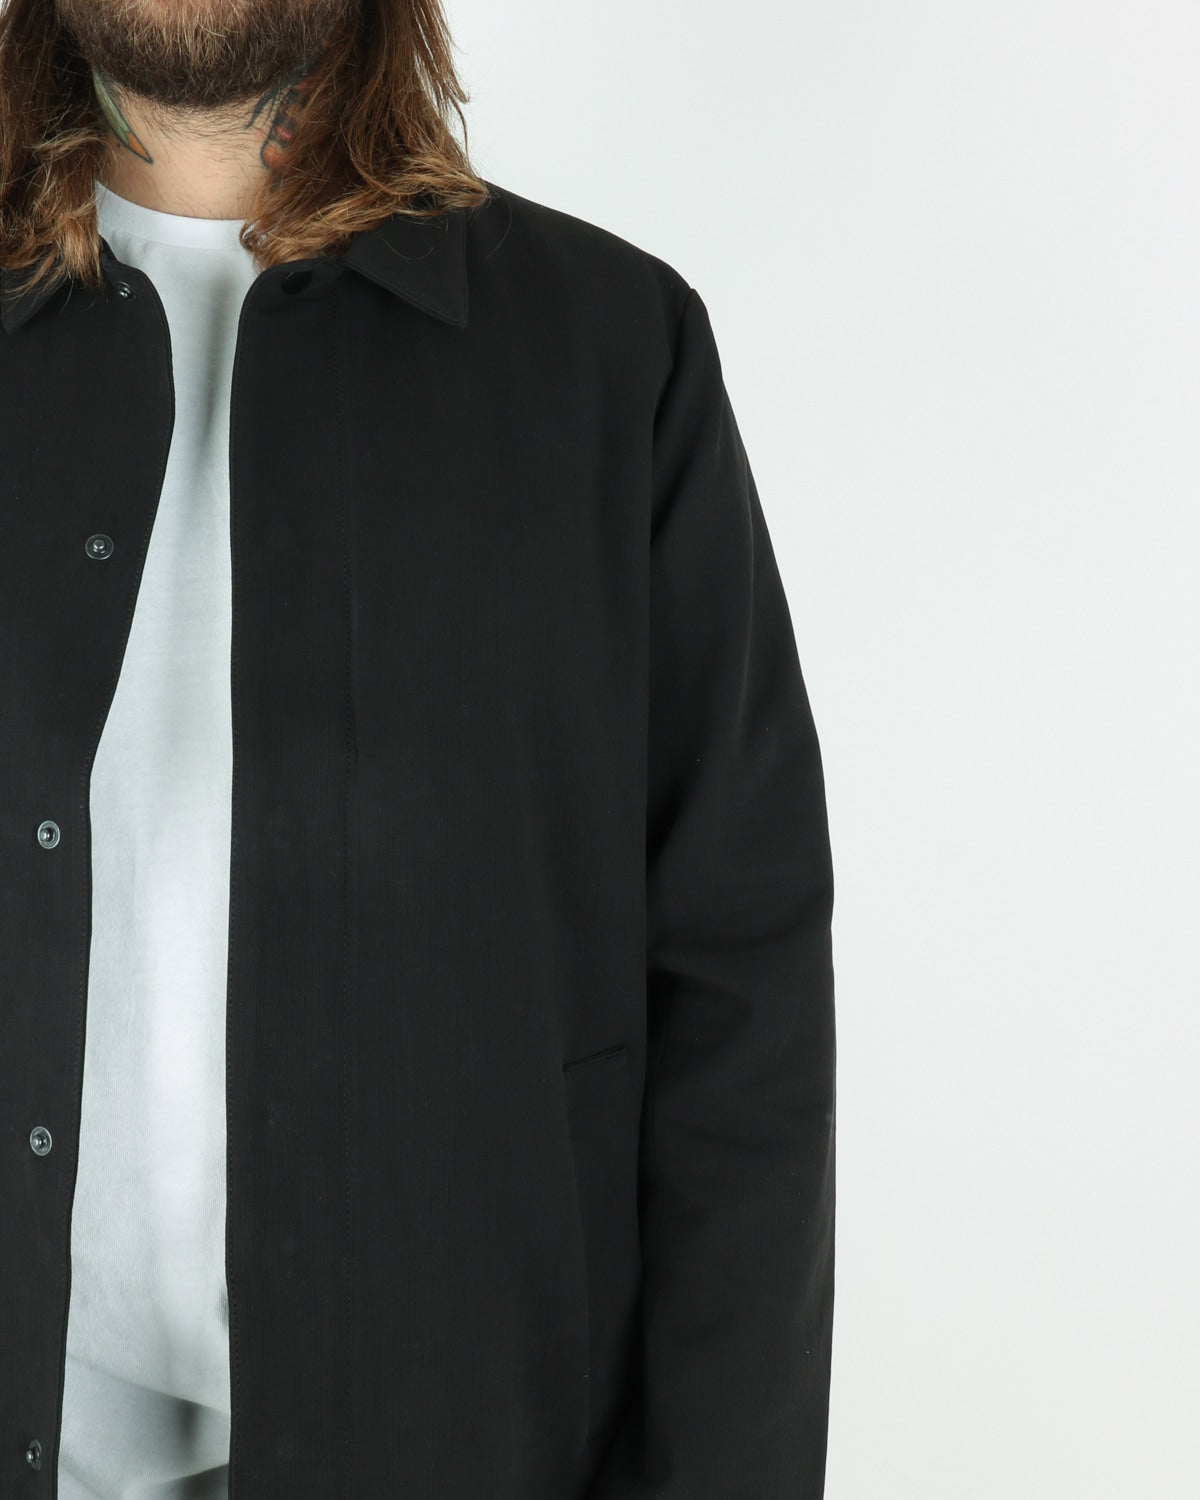 legends_spring mac coat_black_view_3_4